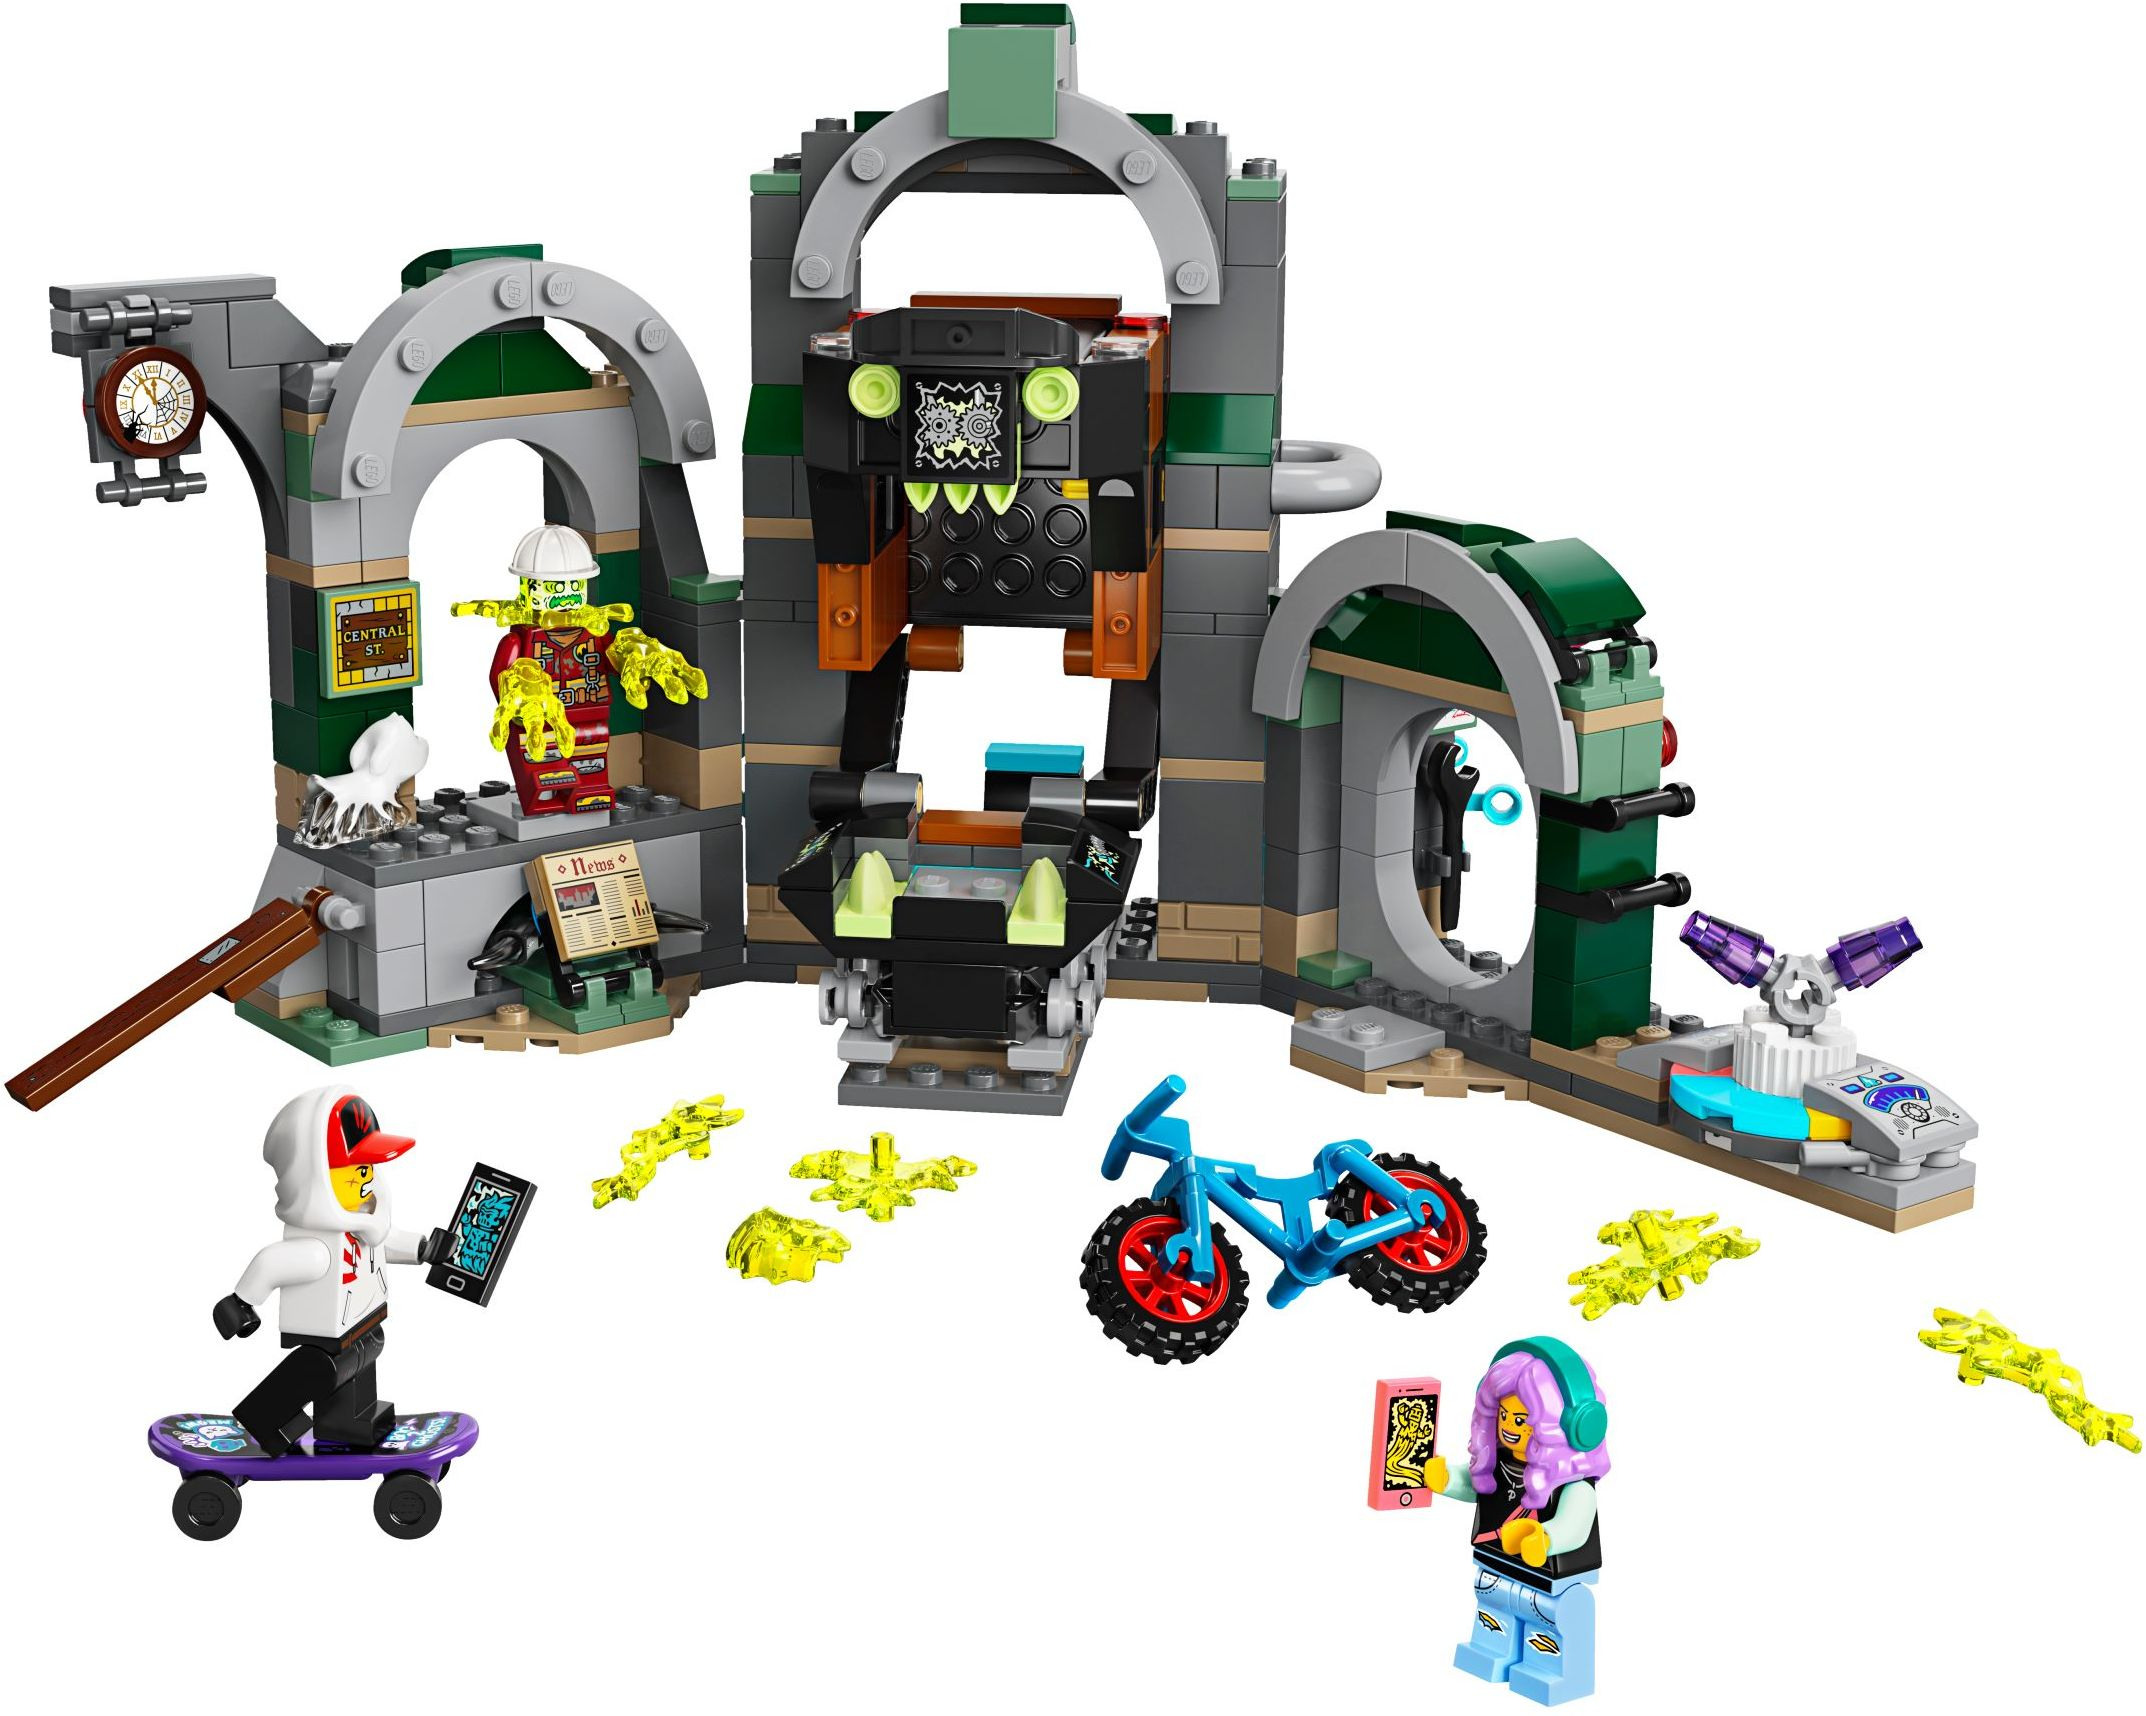 New Lego Sets 2020.2020 Hidden Side Sets Officially Revealed Brickset Lego